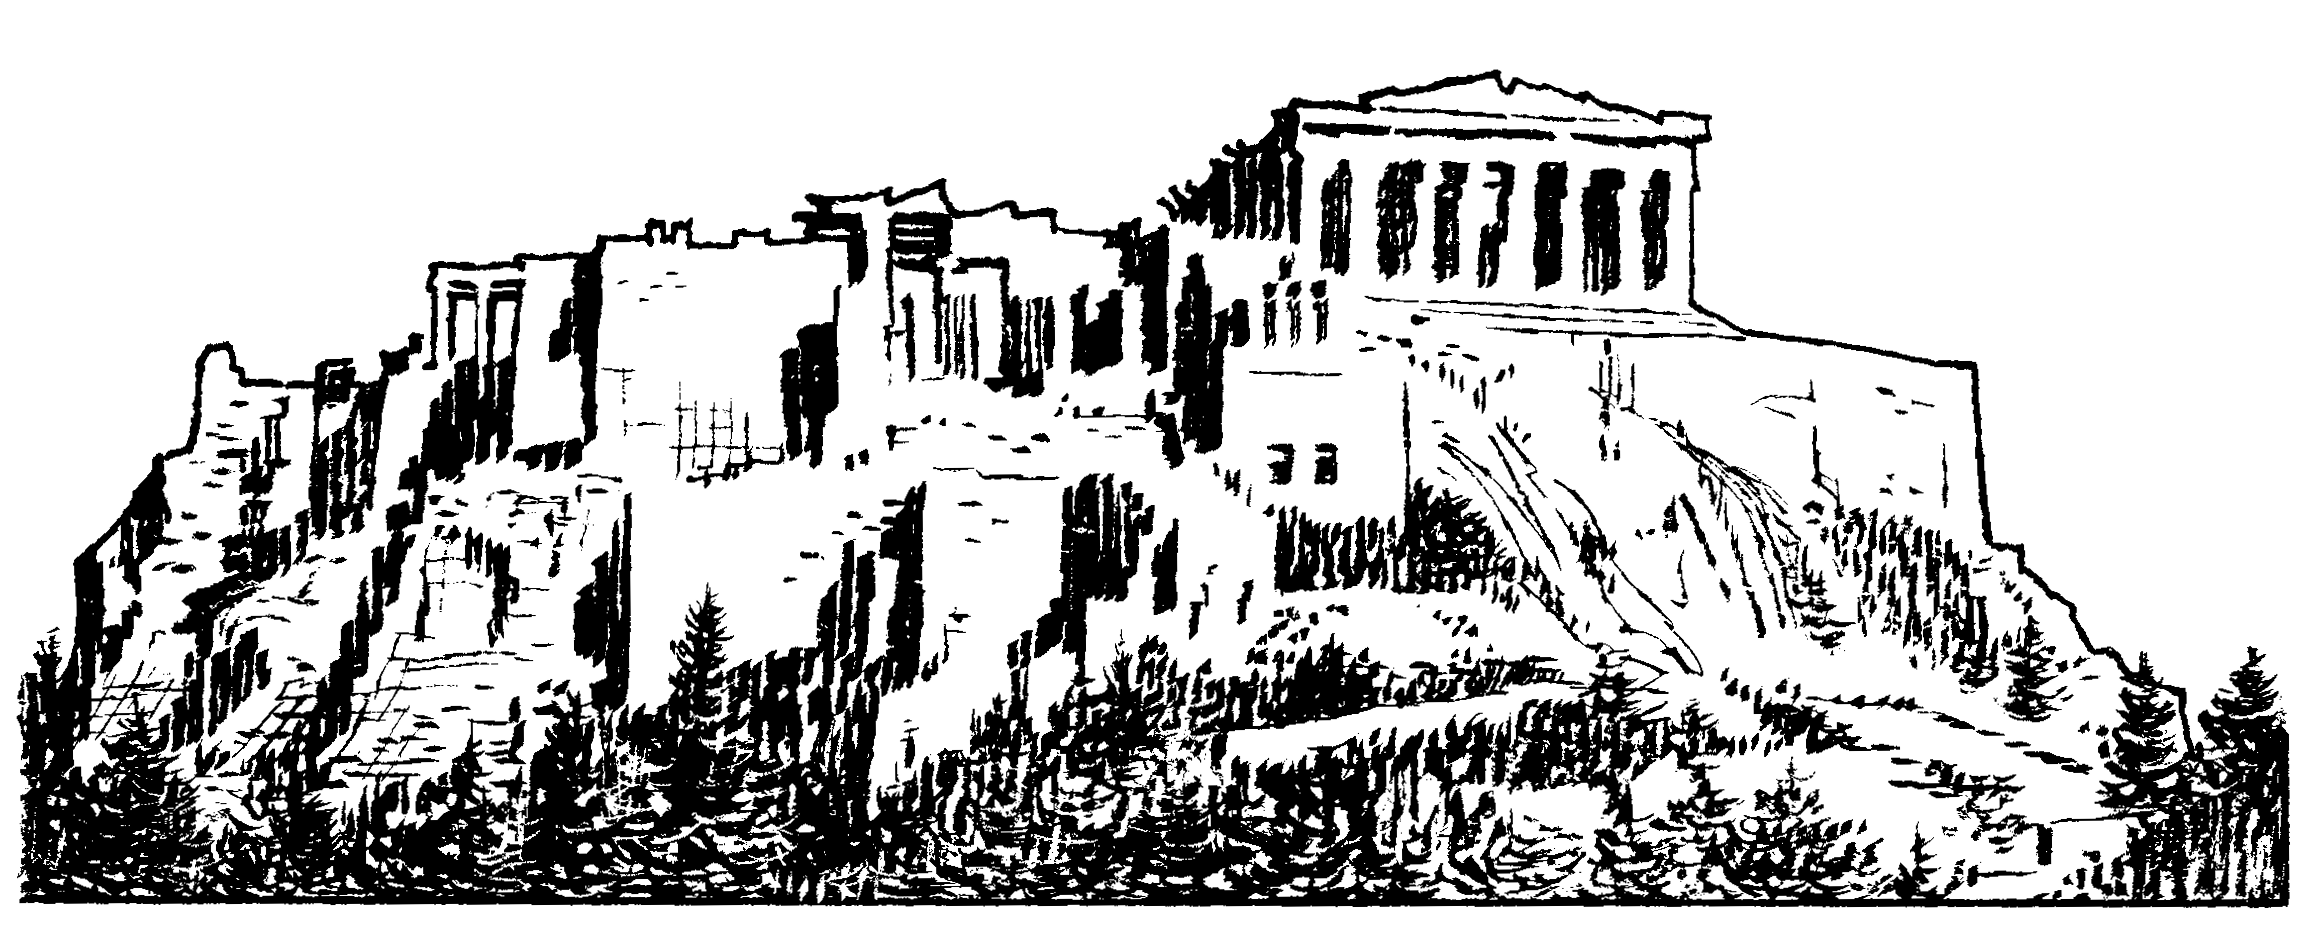 File:Acropolis 2 (PSF).png - Wikimedia Commons